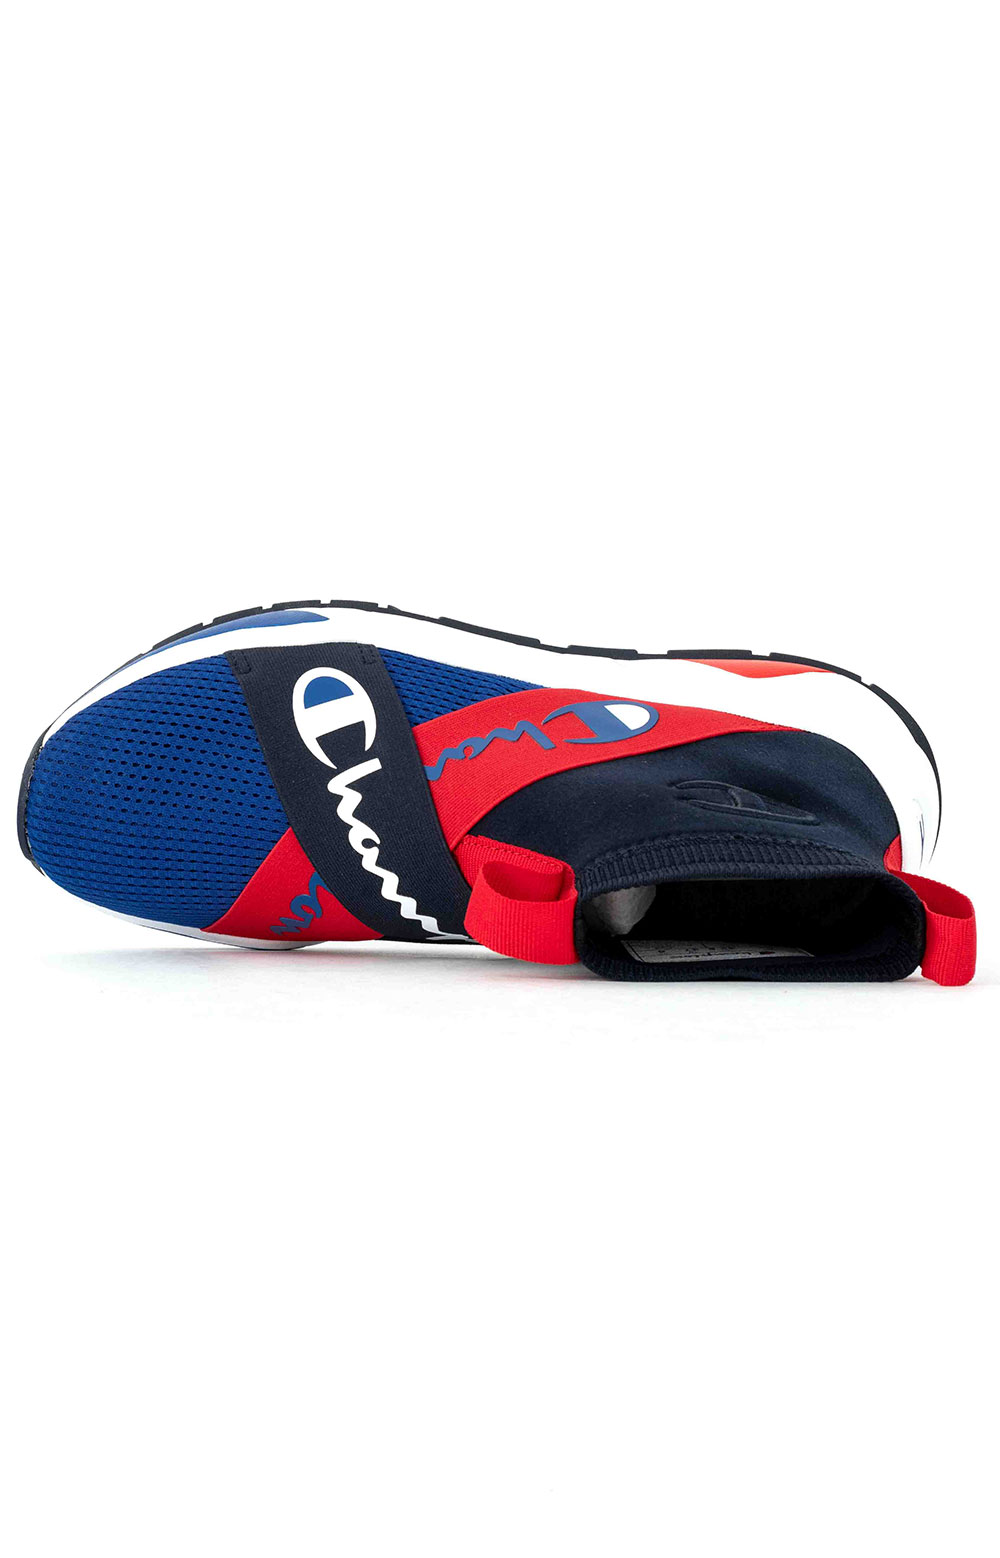 Rally Pro Shoes - Navy/Surf The Web 2